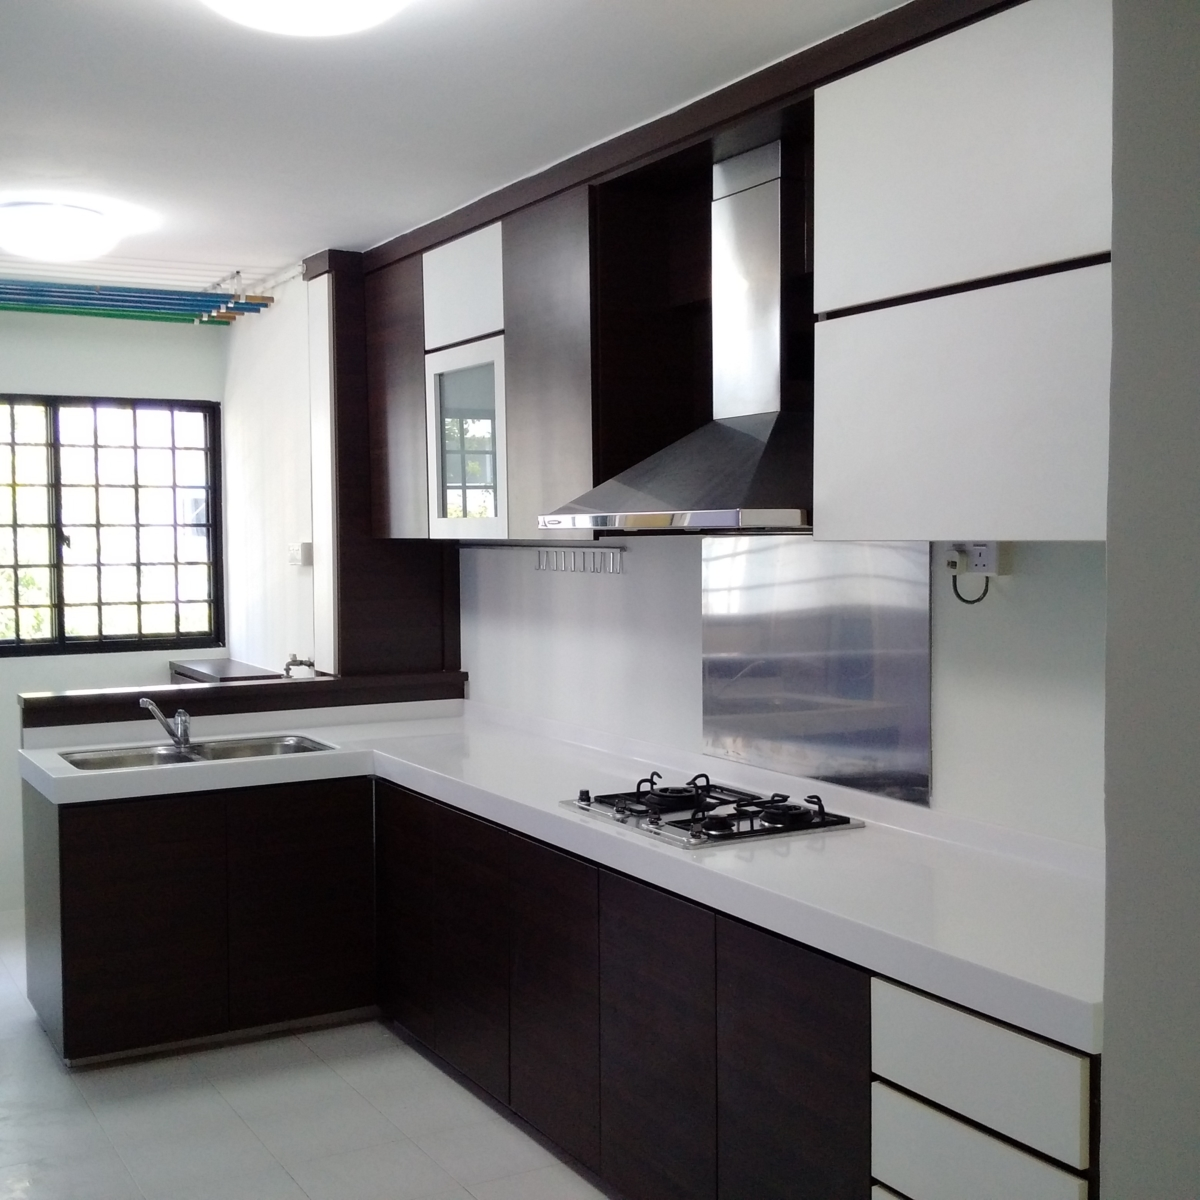 HDB Renovation at Yishun St 11 by Brilliance -kitchen